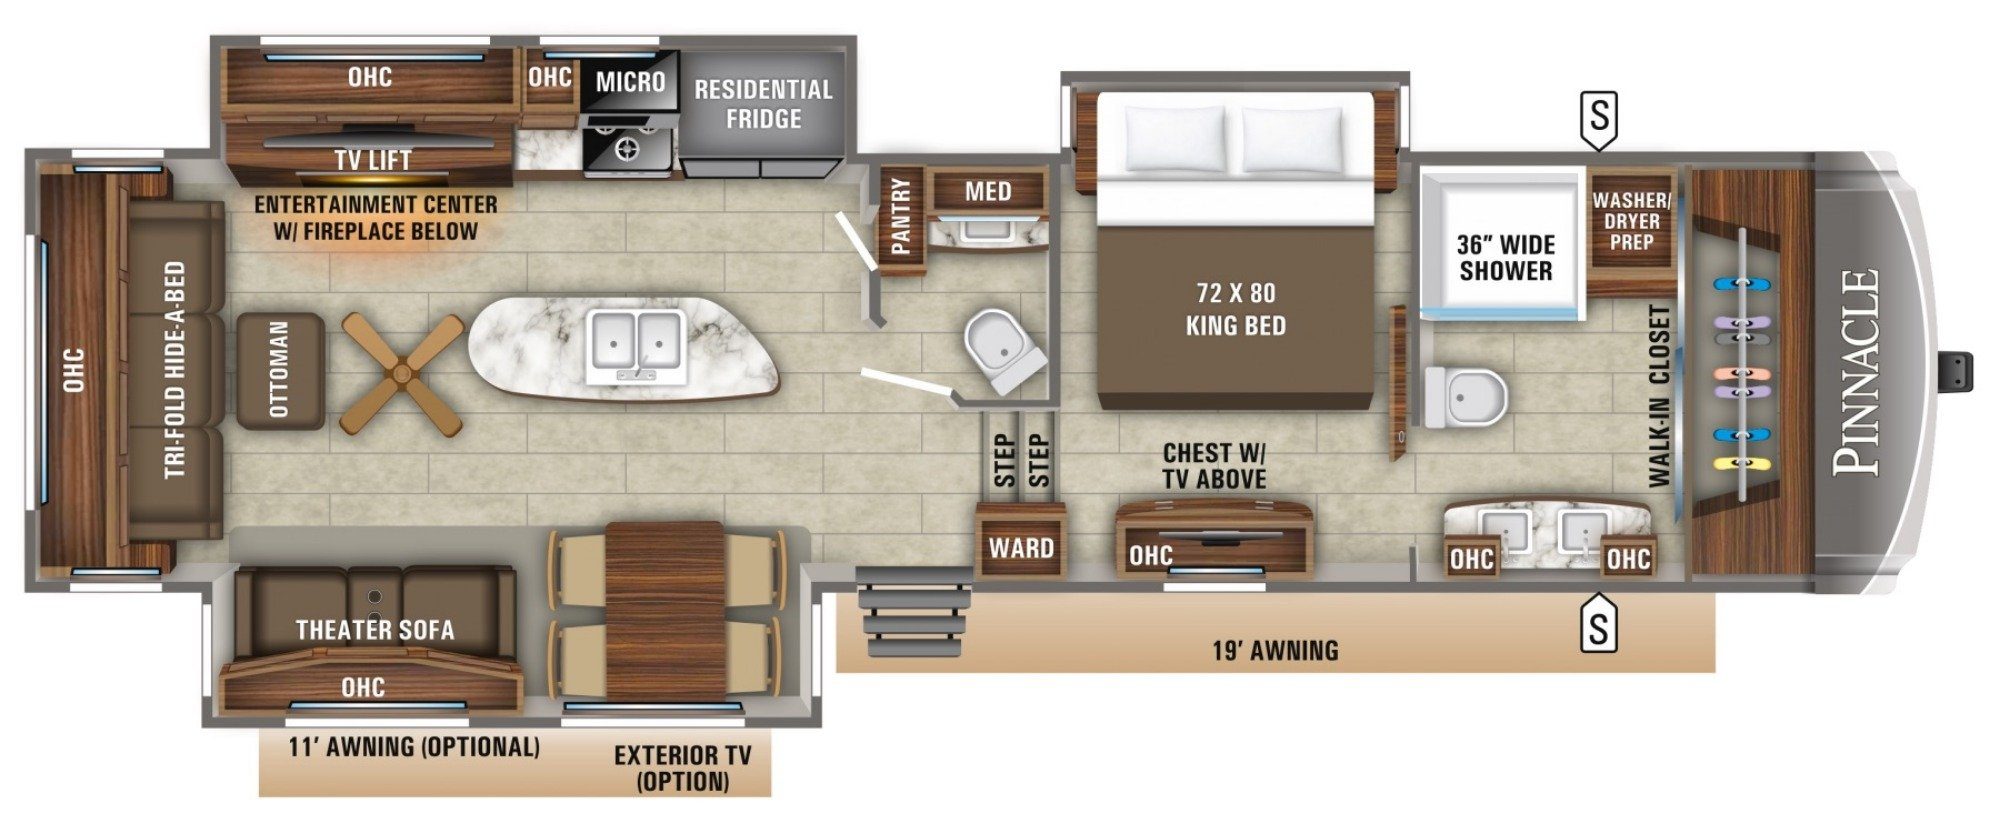 View Floor Plan for 2019 JAYCO PINNACLE 36FBTS